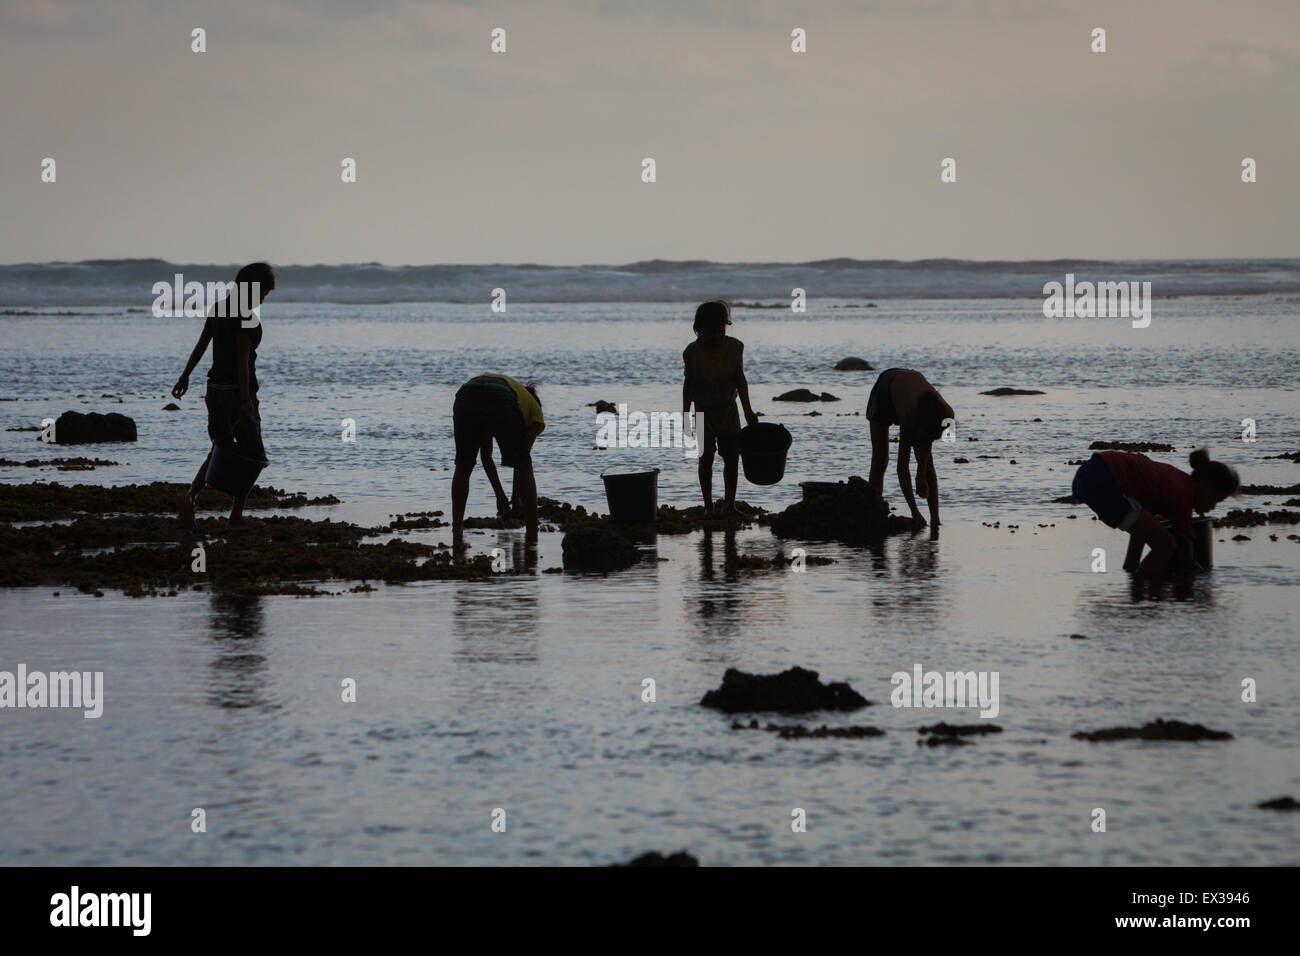 A group of women silhouetted against the bright light as they search the water for sea worms and other sea products - Stock Image